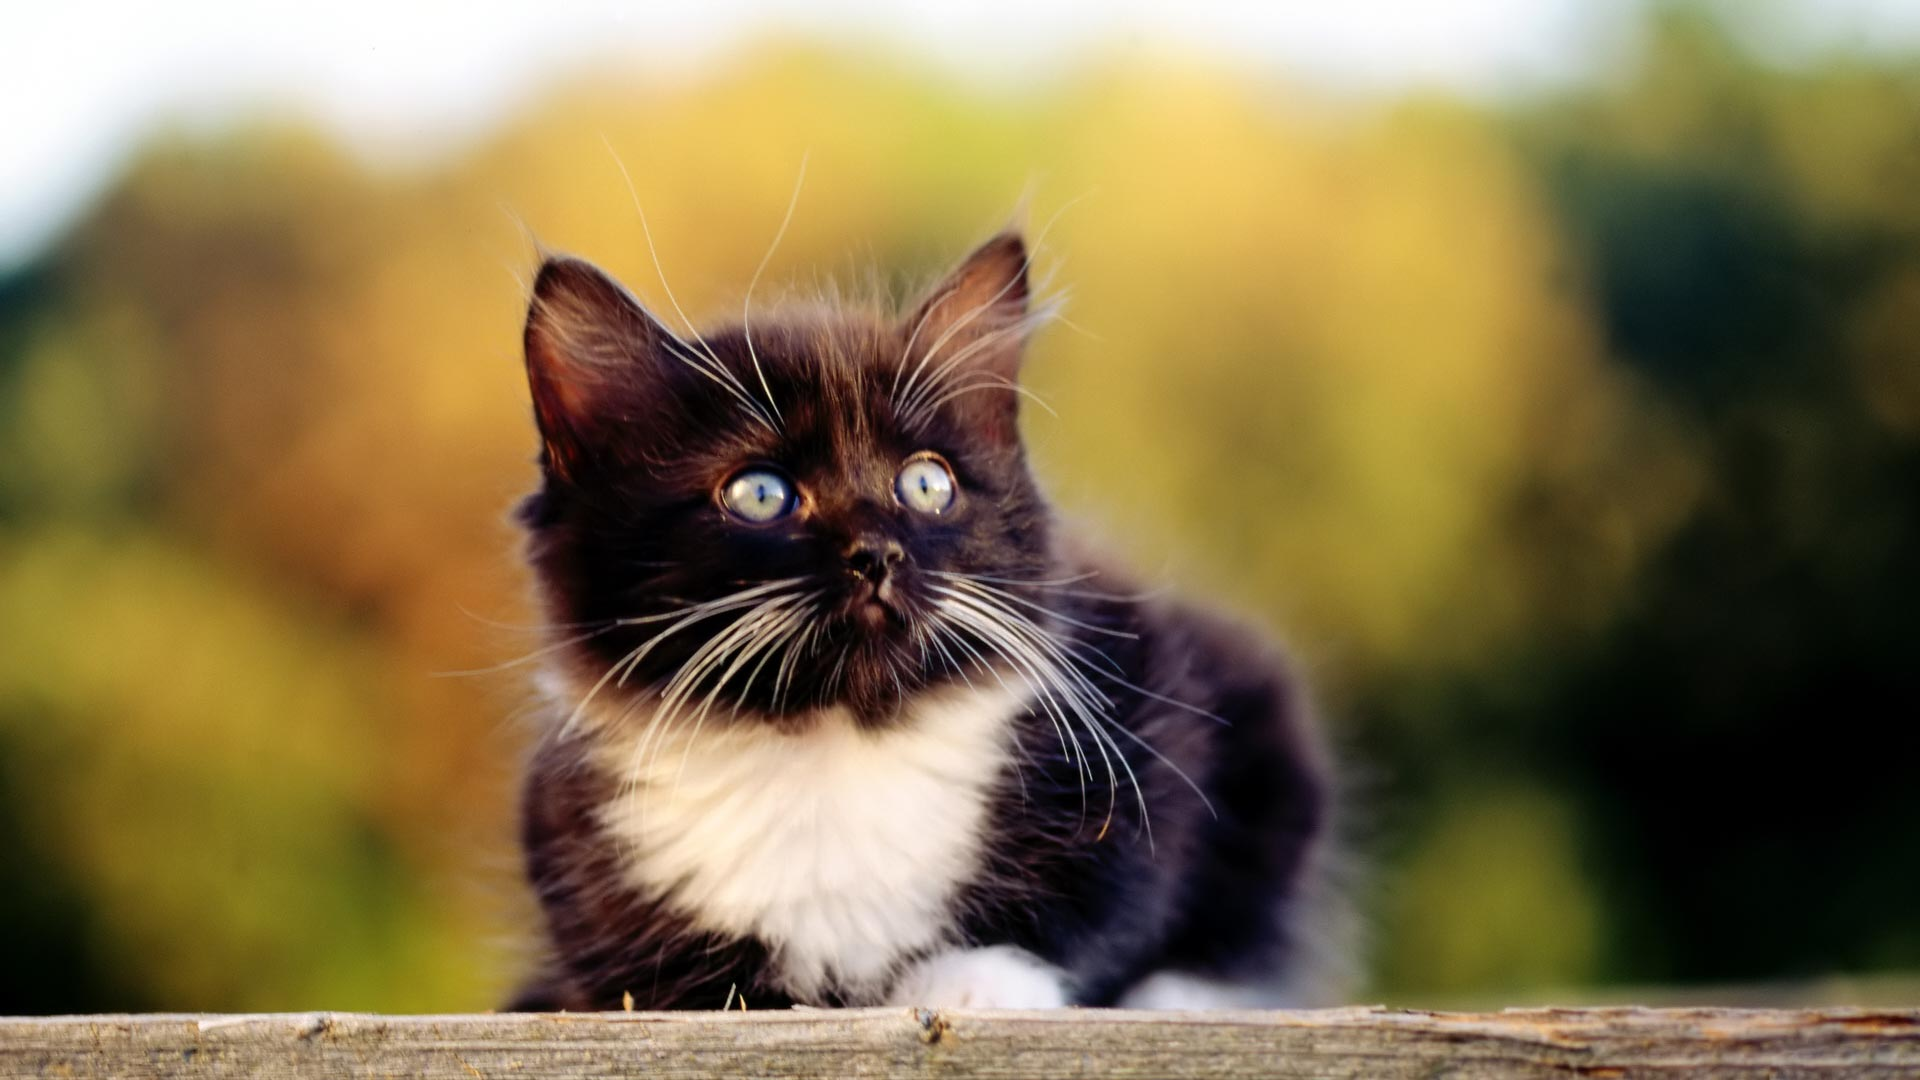 kitten wallpaper widescreen - wallpapersafari